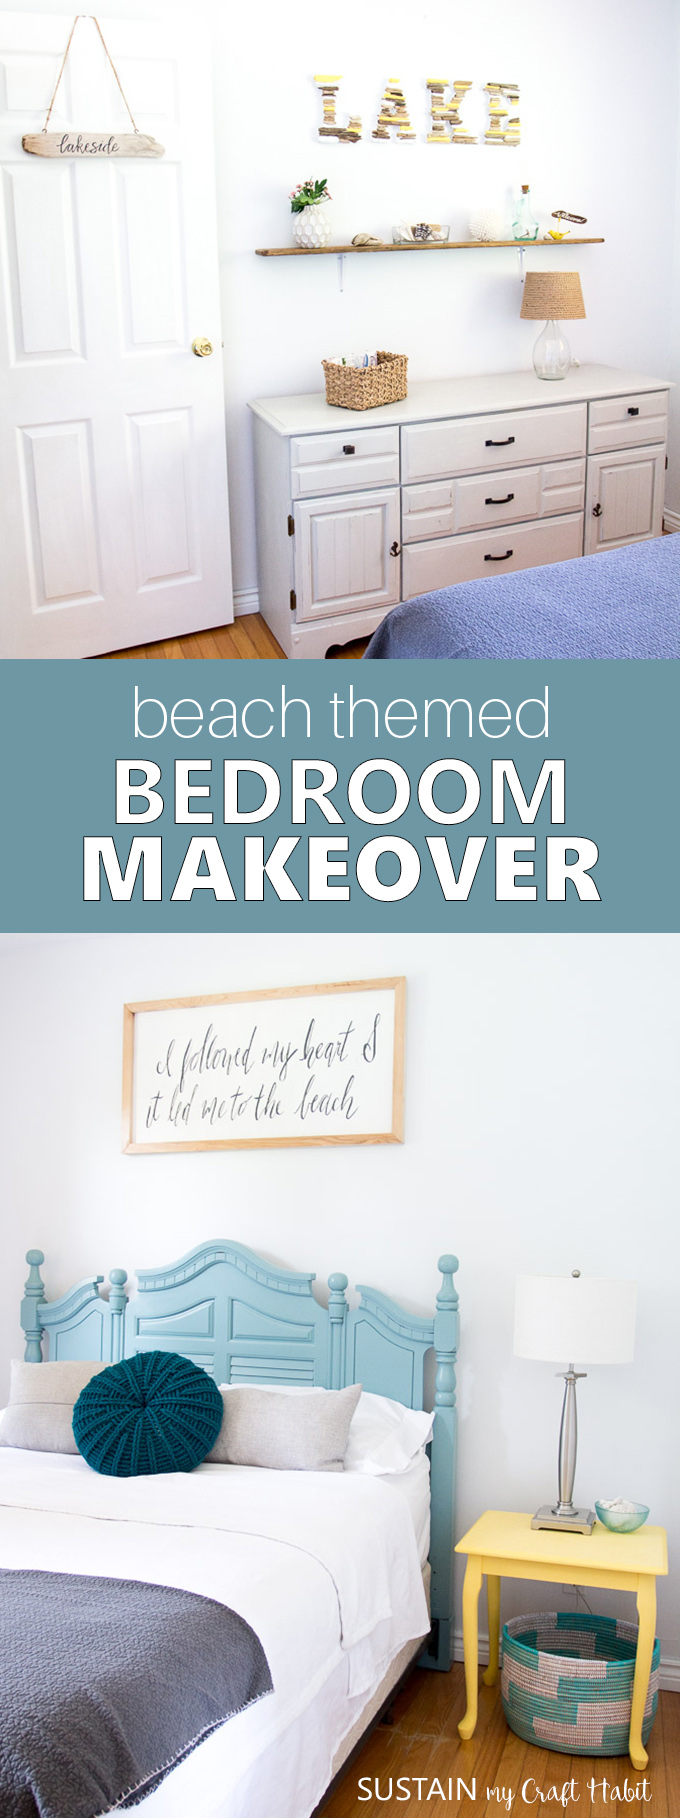 Beach Themed Bedrooms: Lakeside Room Reveal! - Sustain My Craft Habit